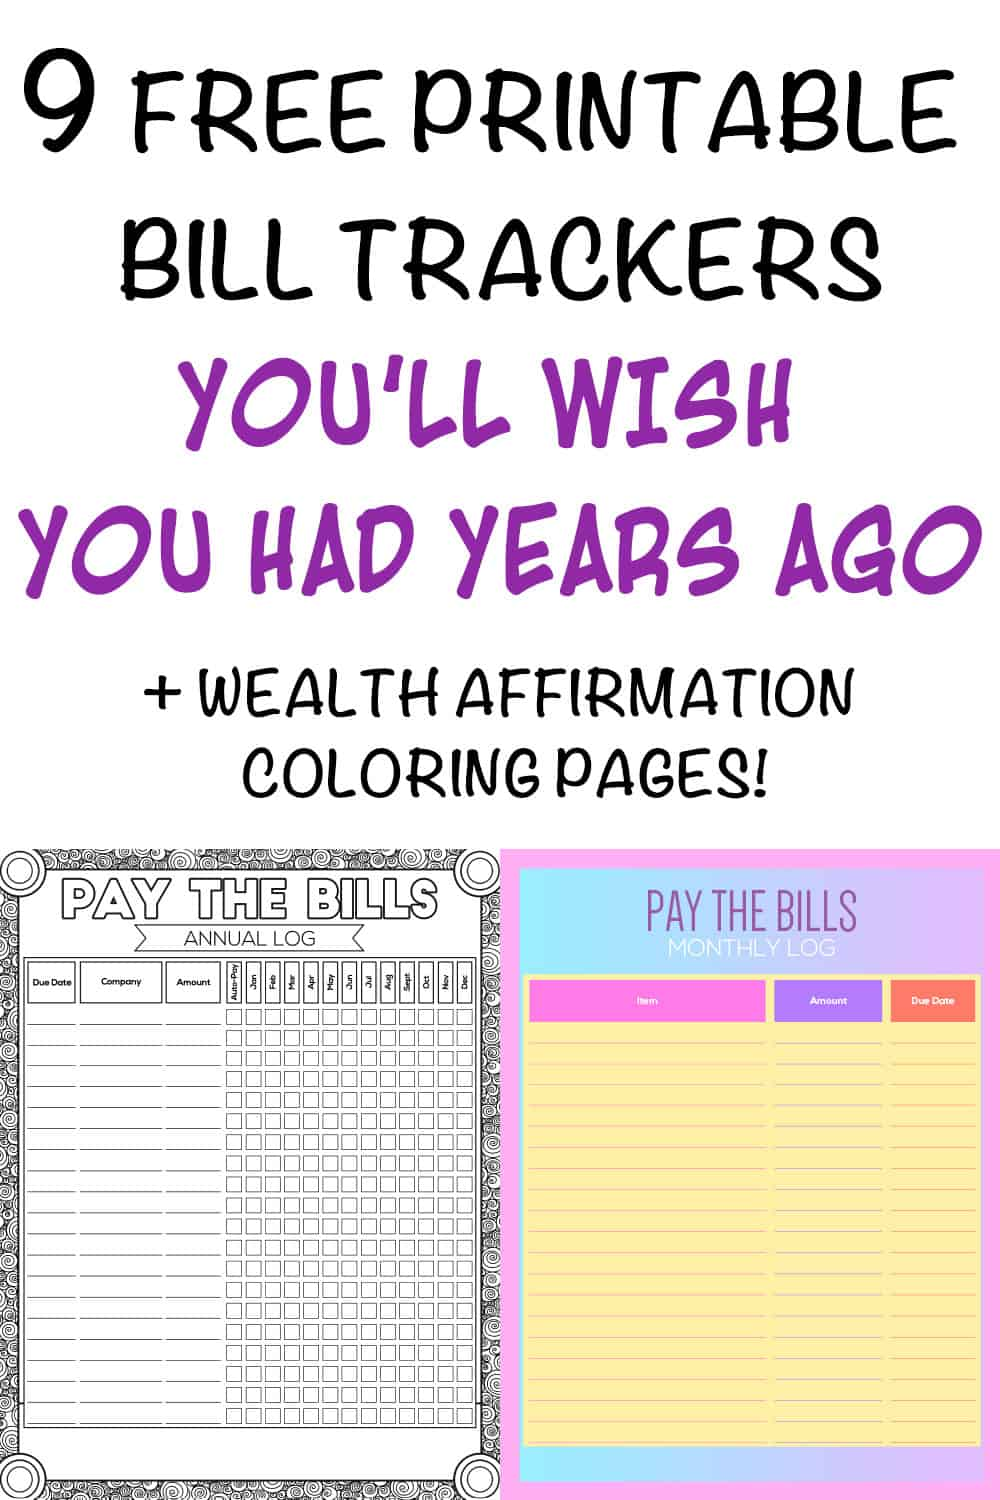 photo about Bill Payment Checklist Printable called 9+ Printable Monthly bill Rate Checklists and Invoice Trackers - The